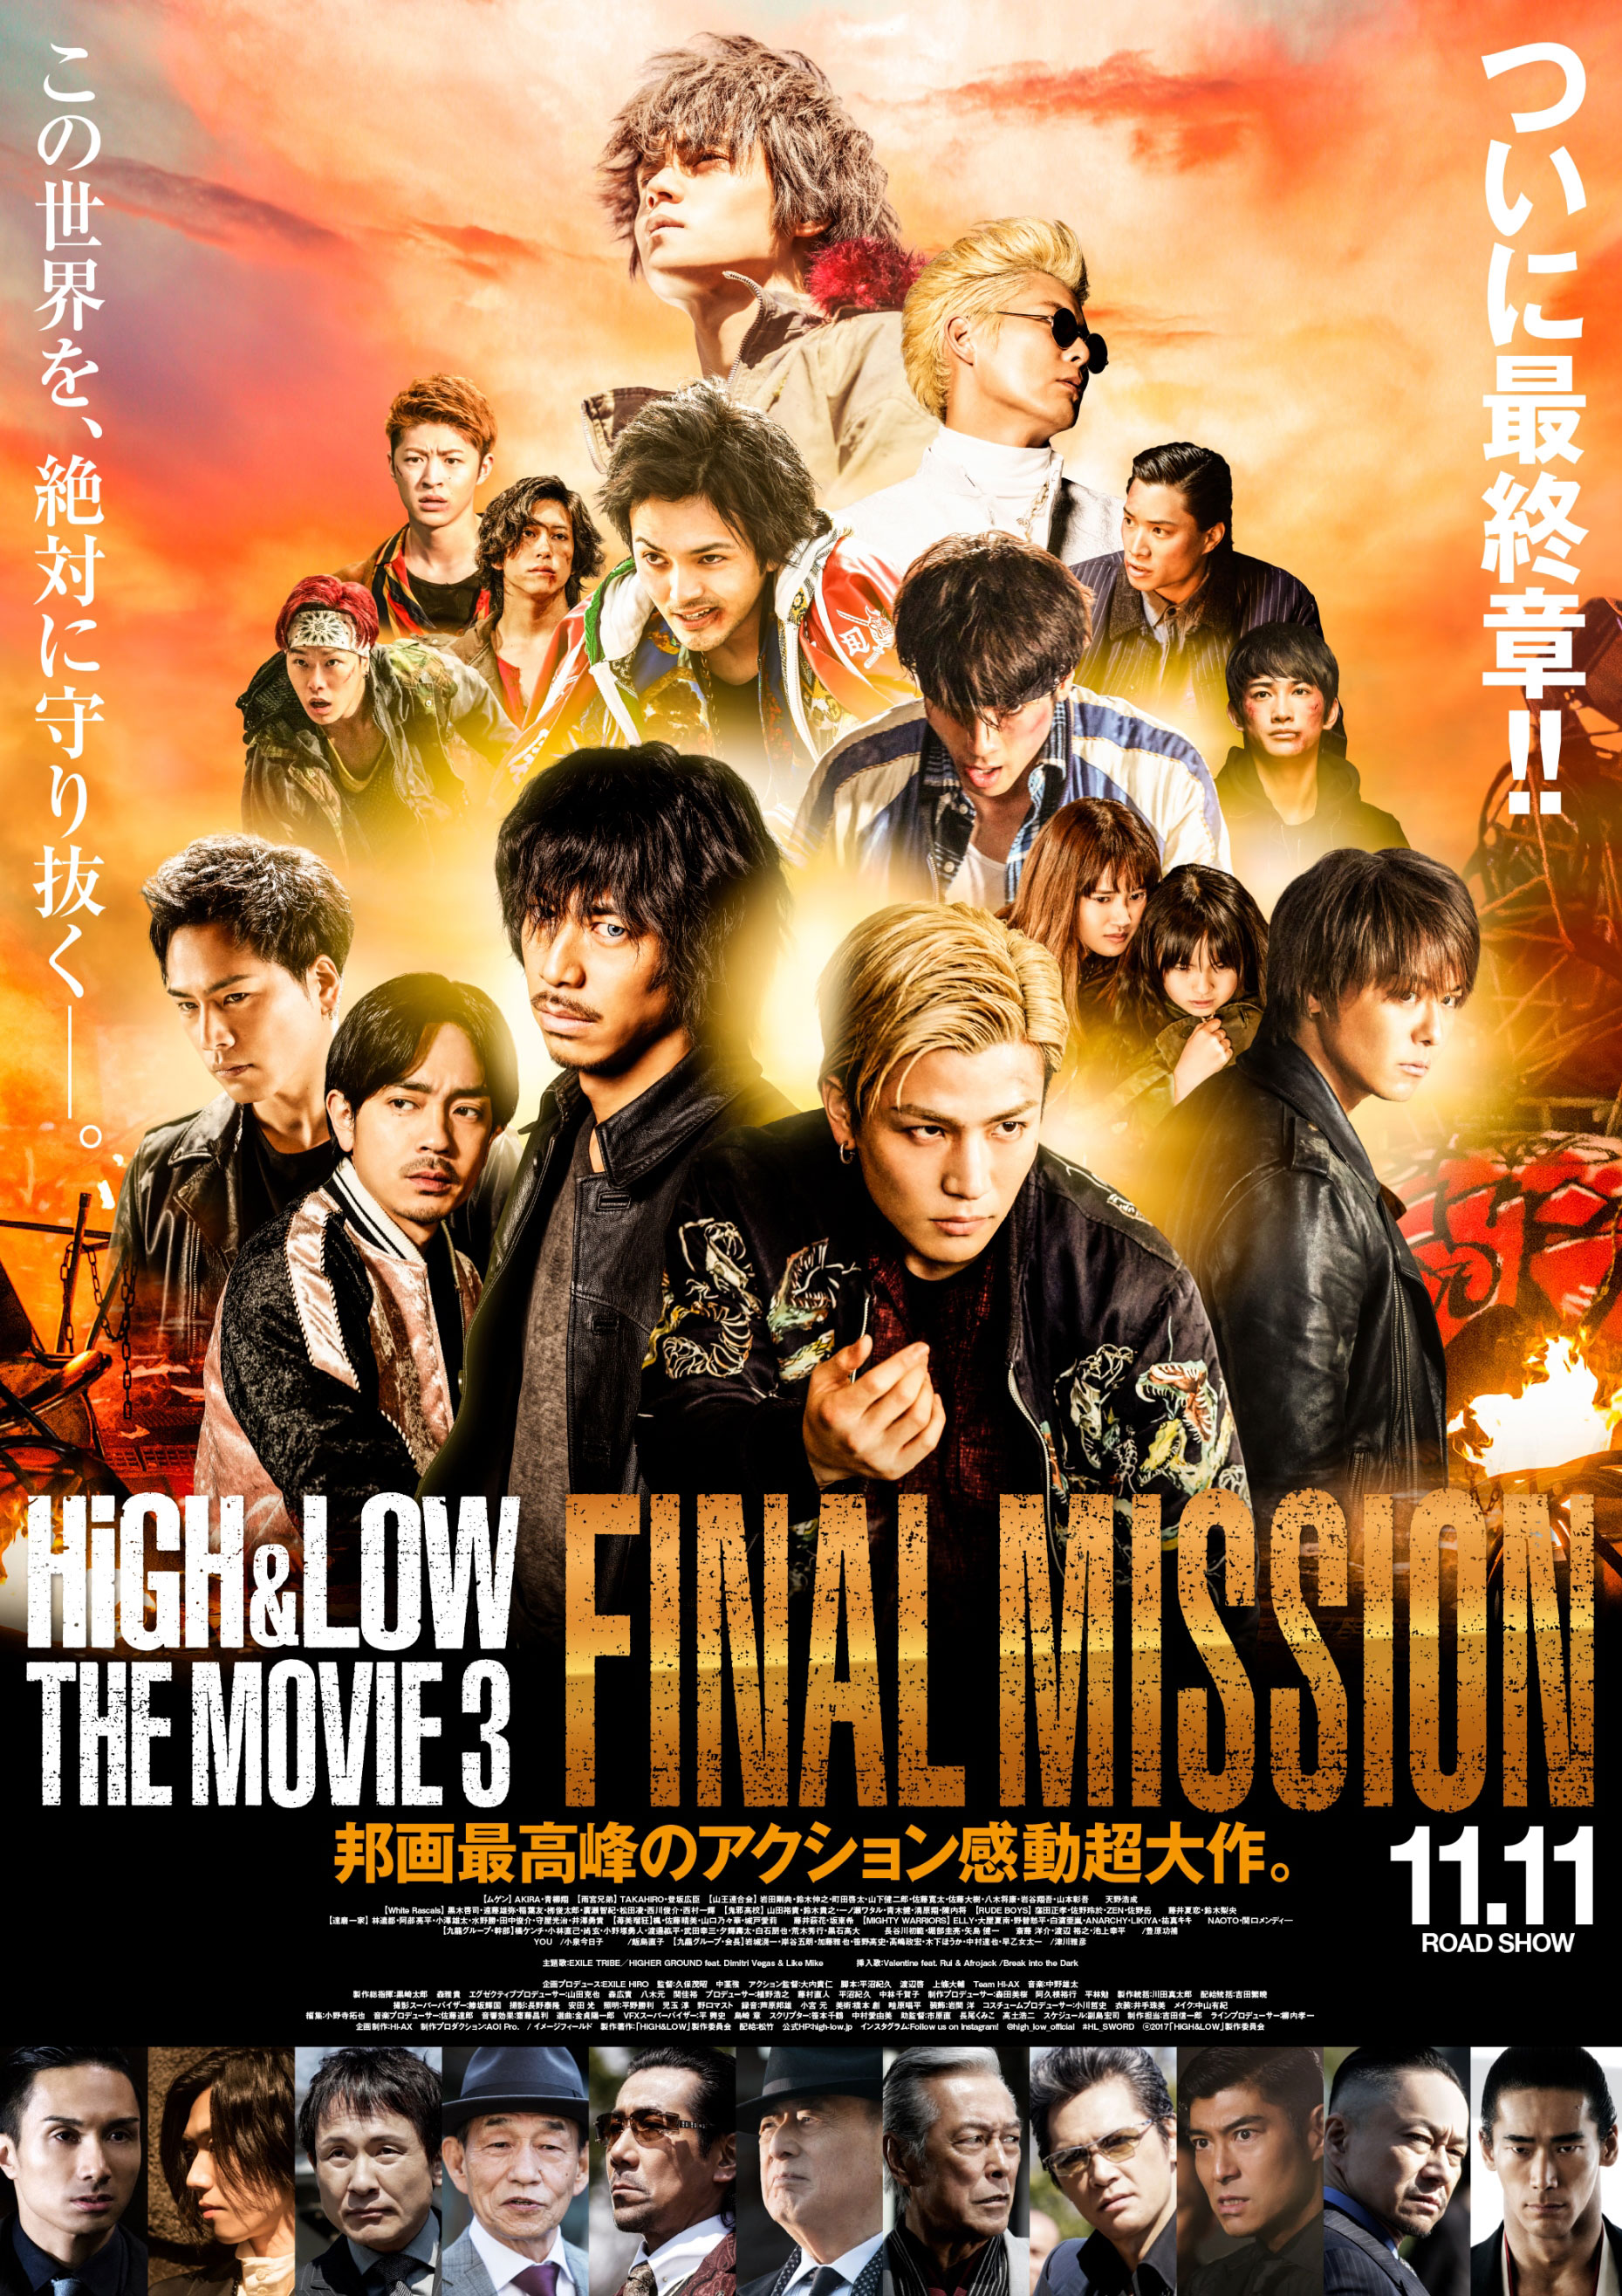 HiGH&LOW THE MOVIE 3 / FINAL M...